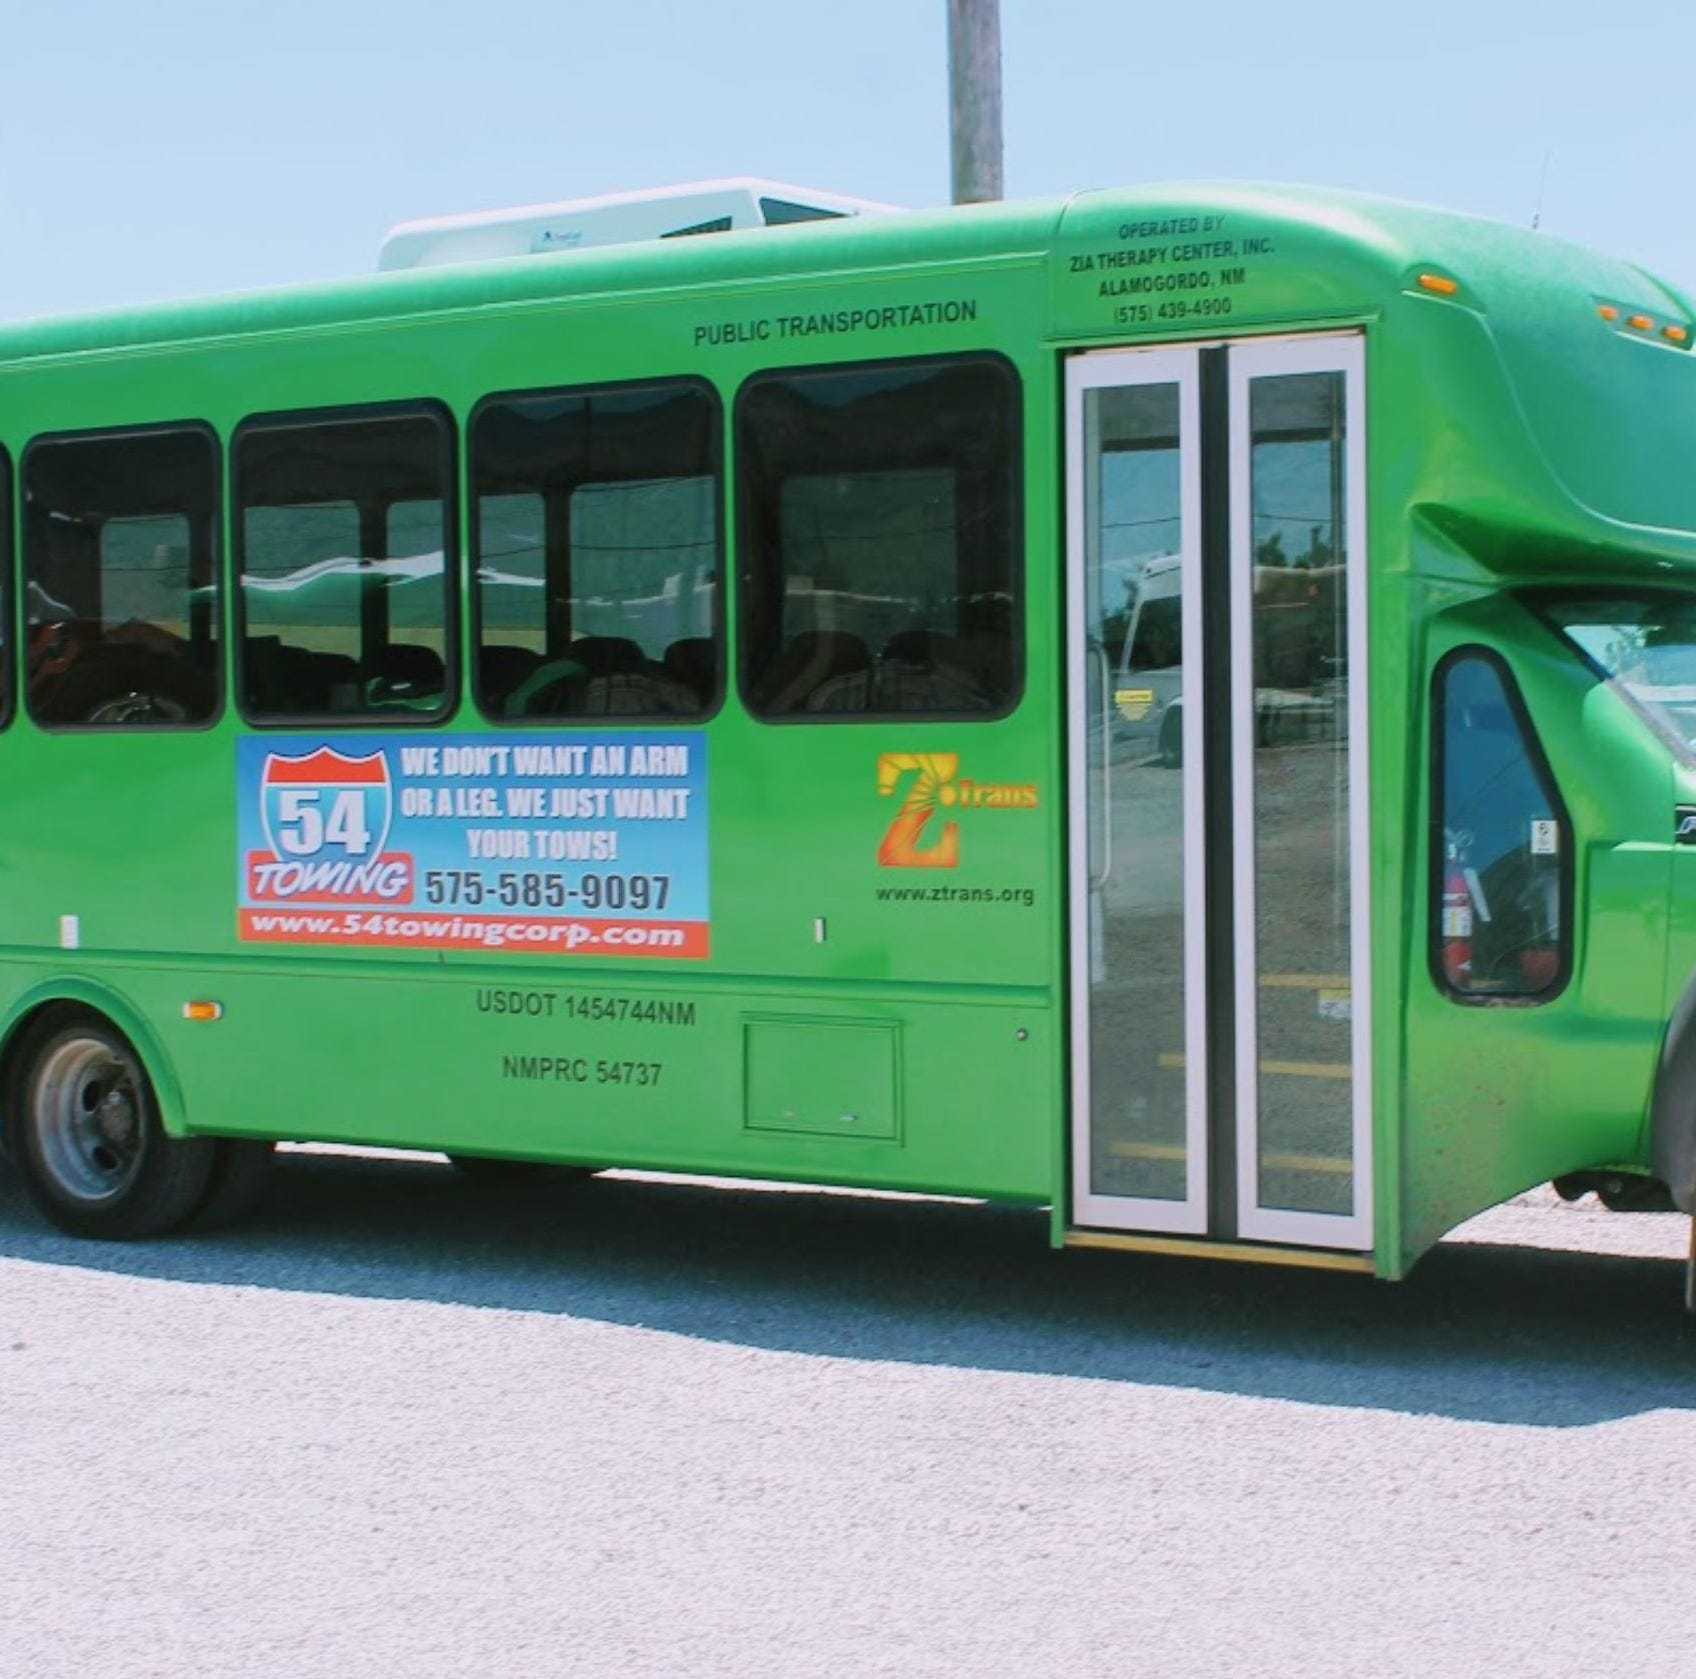 Target date for Z-Trans public transportation Nov. 5